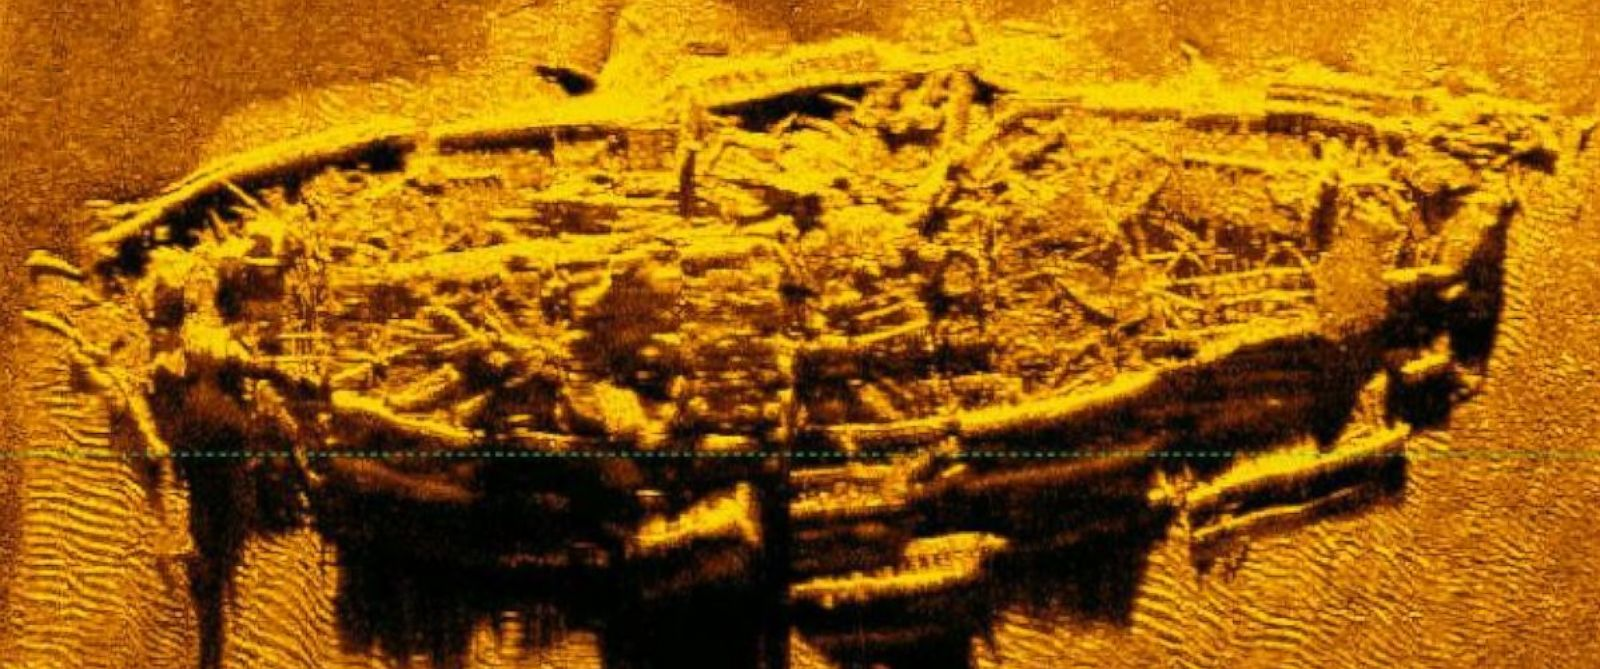 PHOTO: On Feb. 27, 2016, researchers and archaeologists of the North Carolina Office of State Archaeology and the Institute of International Maritime Research discovered what they believe is the shipwreck of a blockade runner from the Civil War.